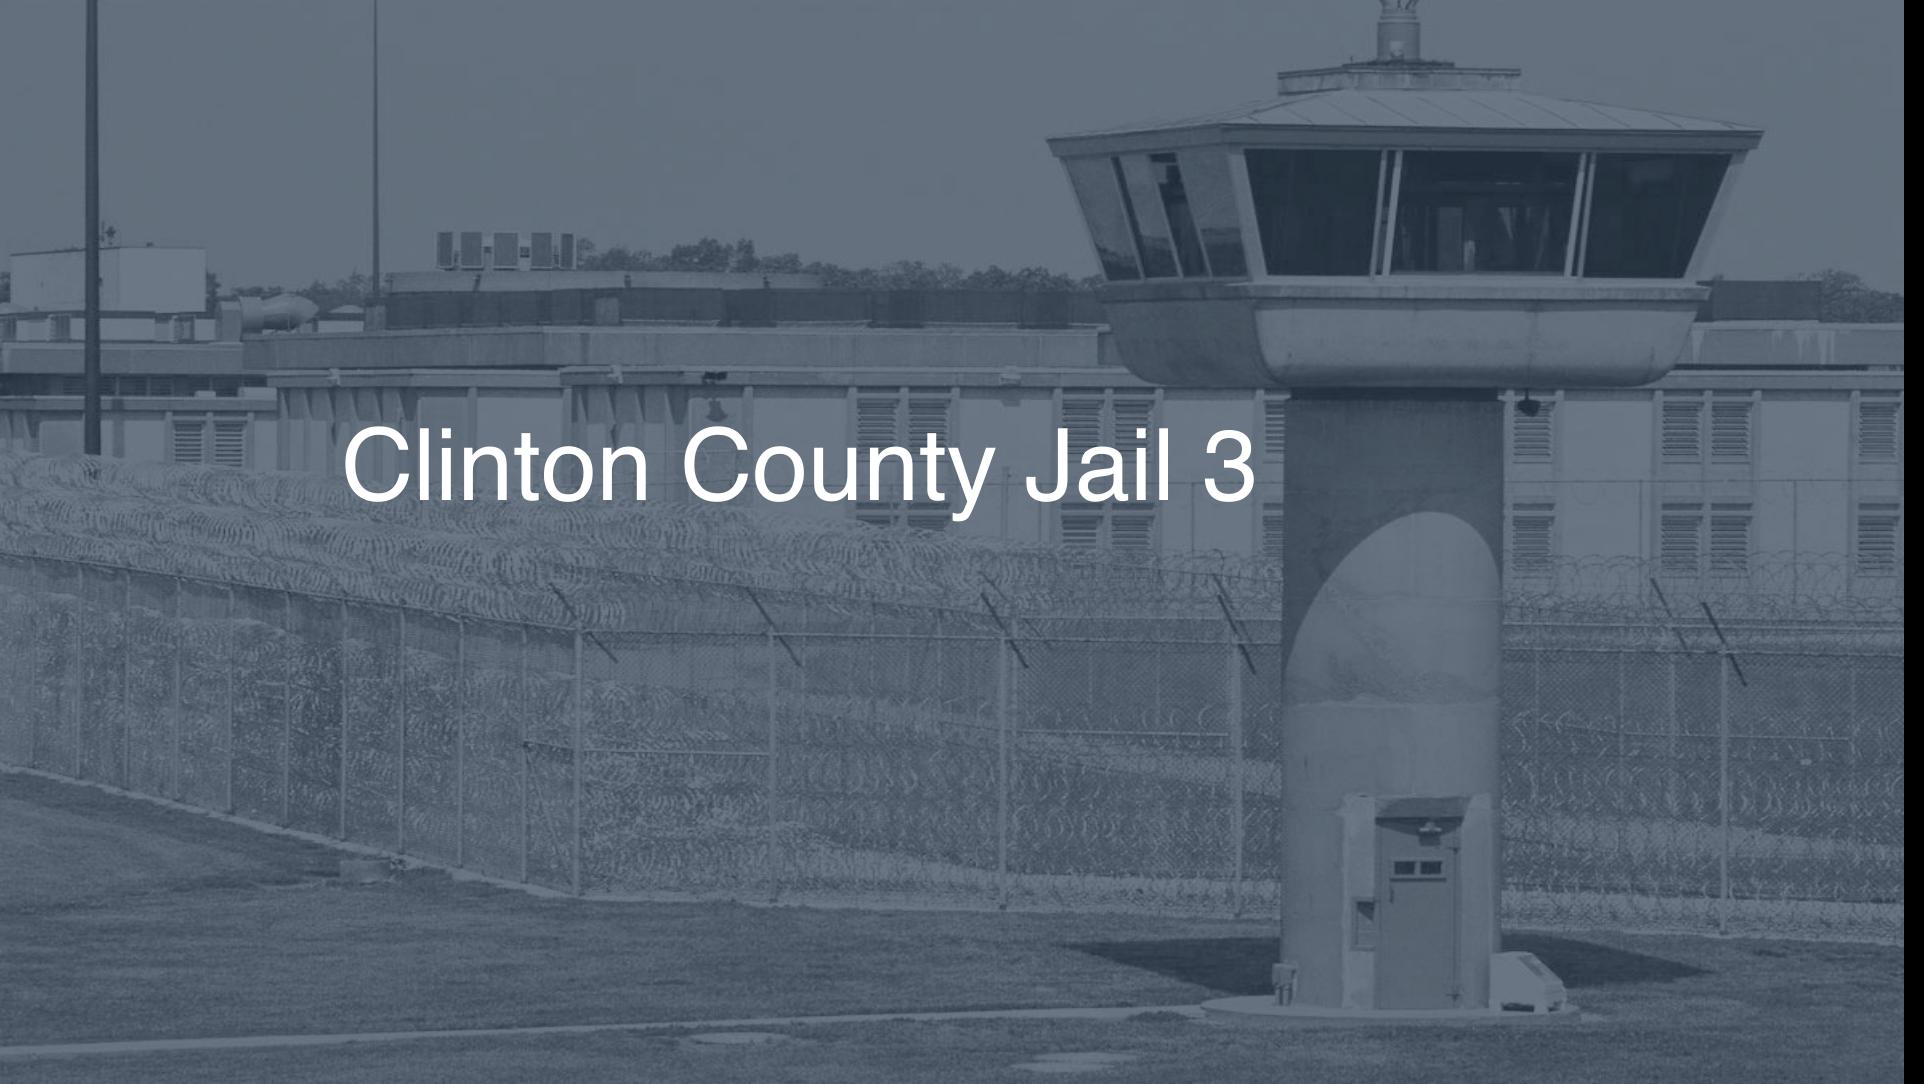 Clinton County Jail | Pigeonly - Inmate Search, Locate